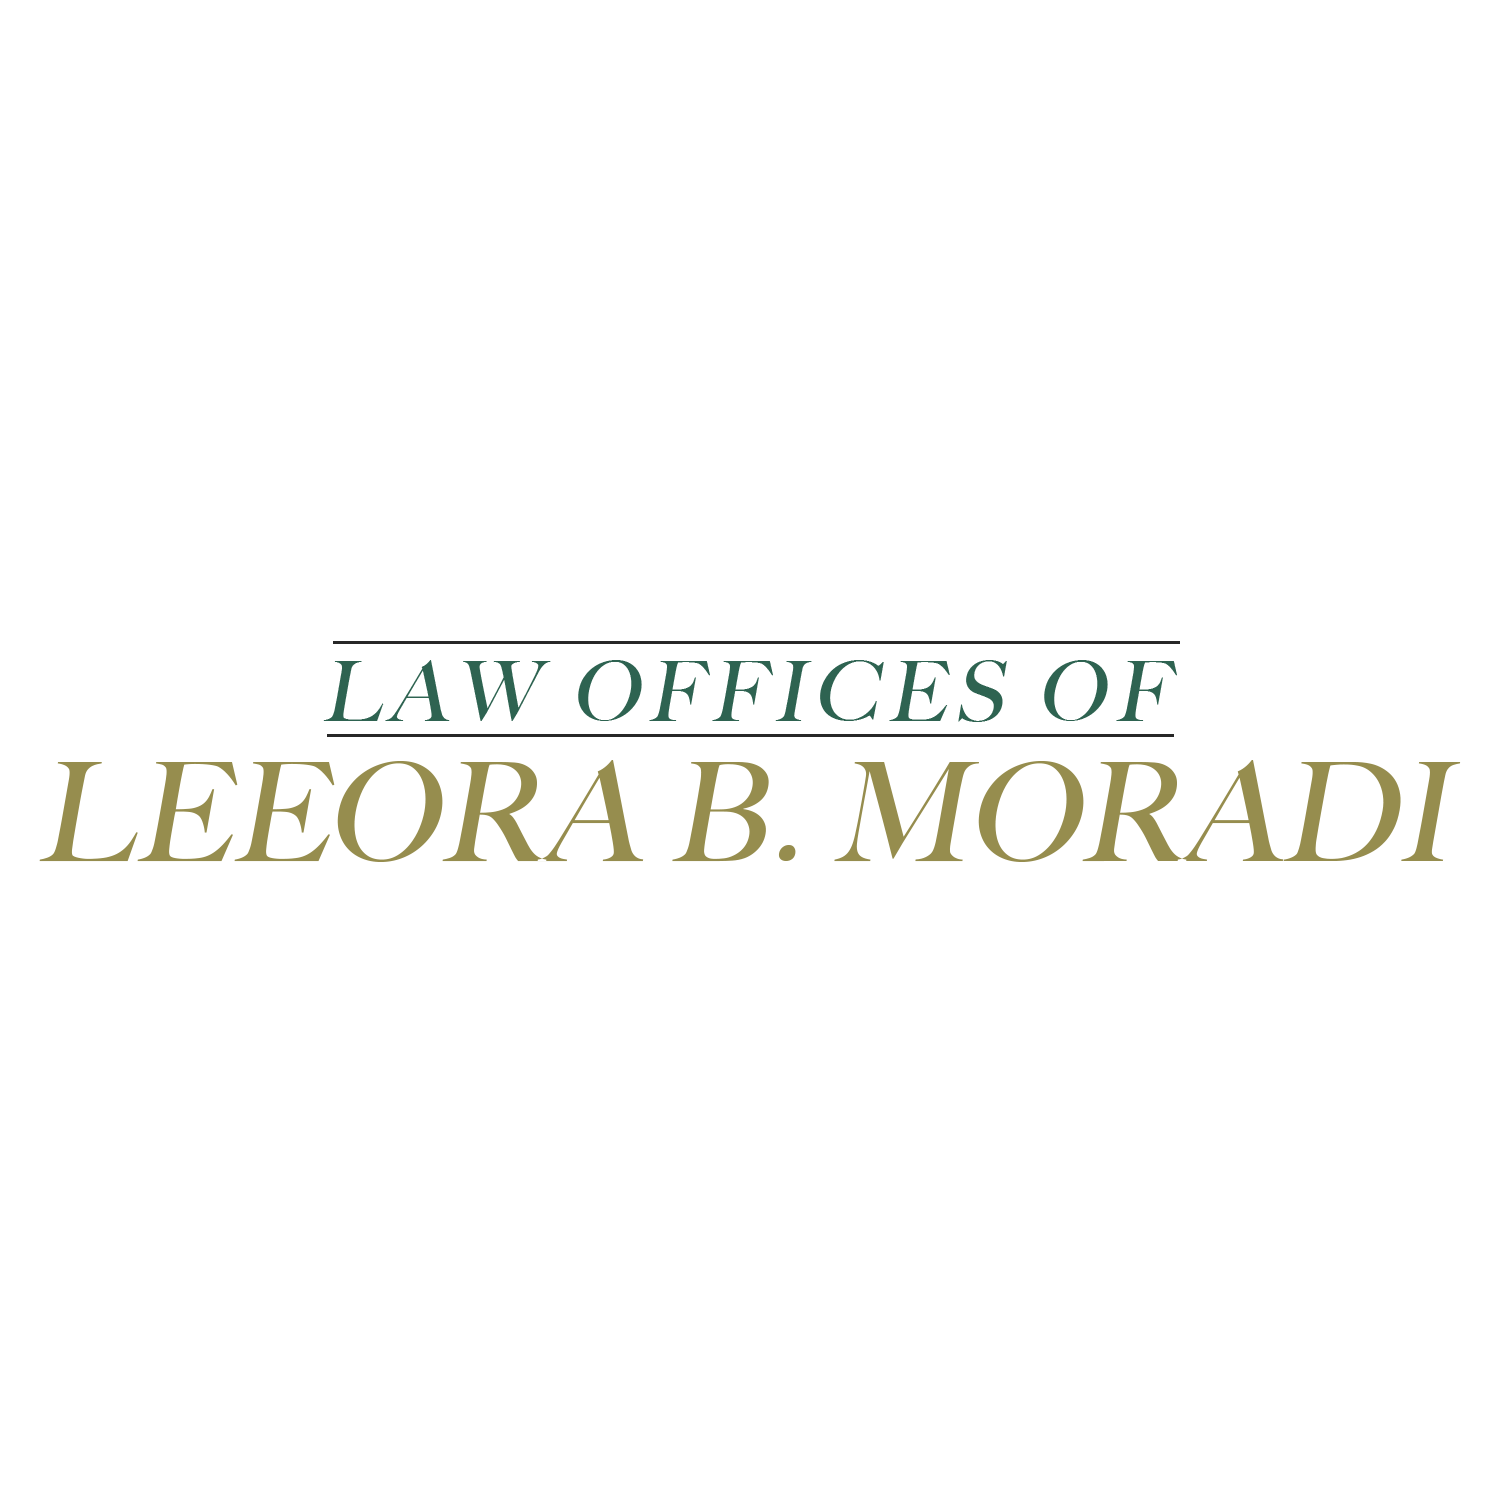 Law Offices of Leeora B. Moradi